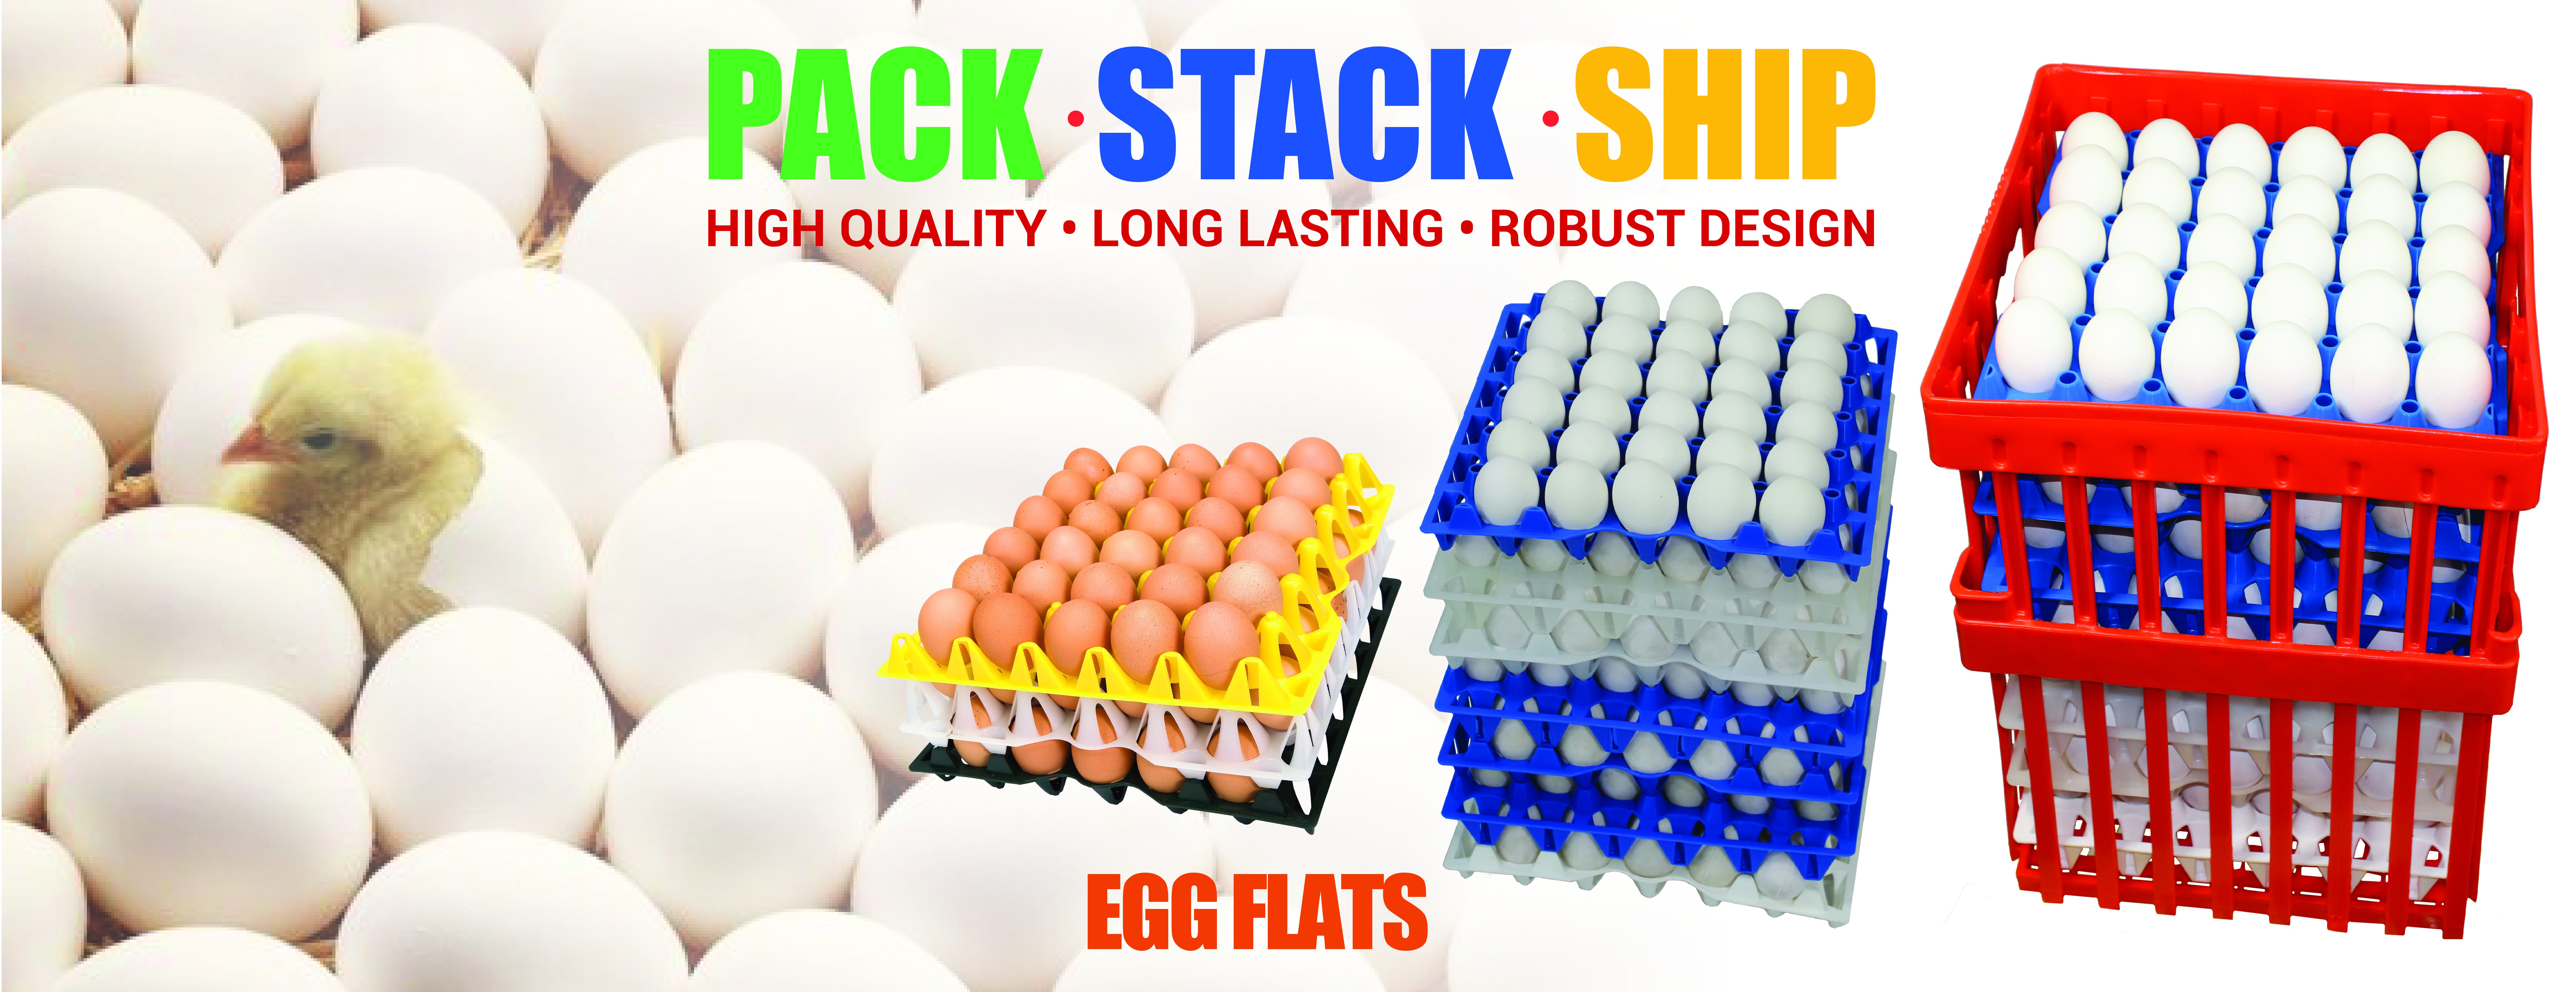 Pakster Poultry Products – 100% Made in the USA!